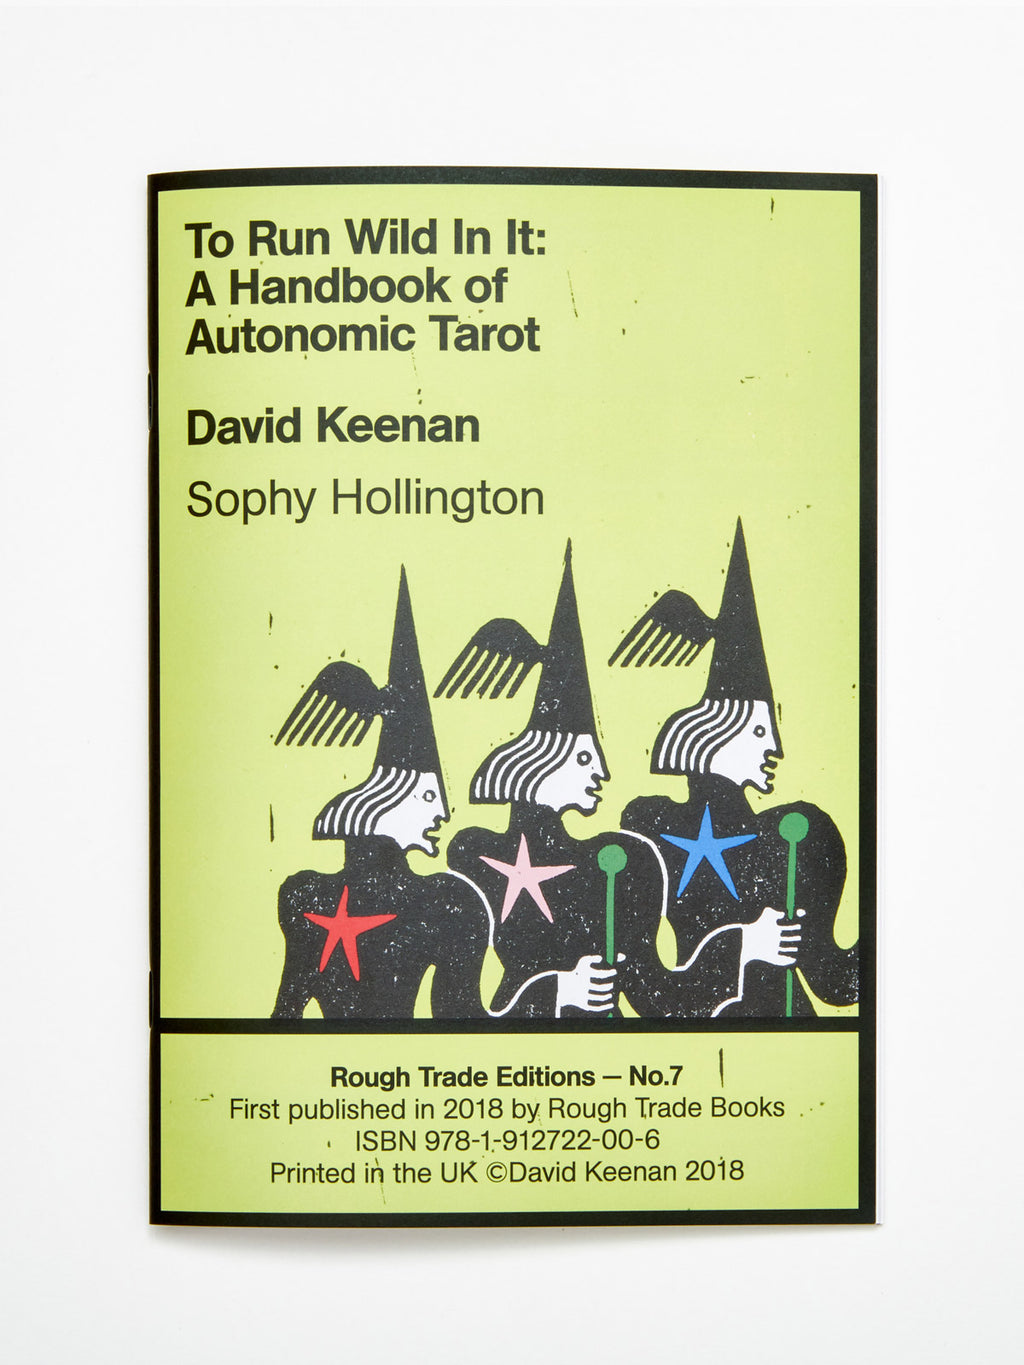 David Keenan & Sophy Hollington - To Run Wild In It